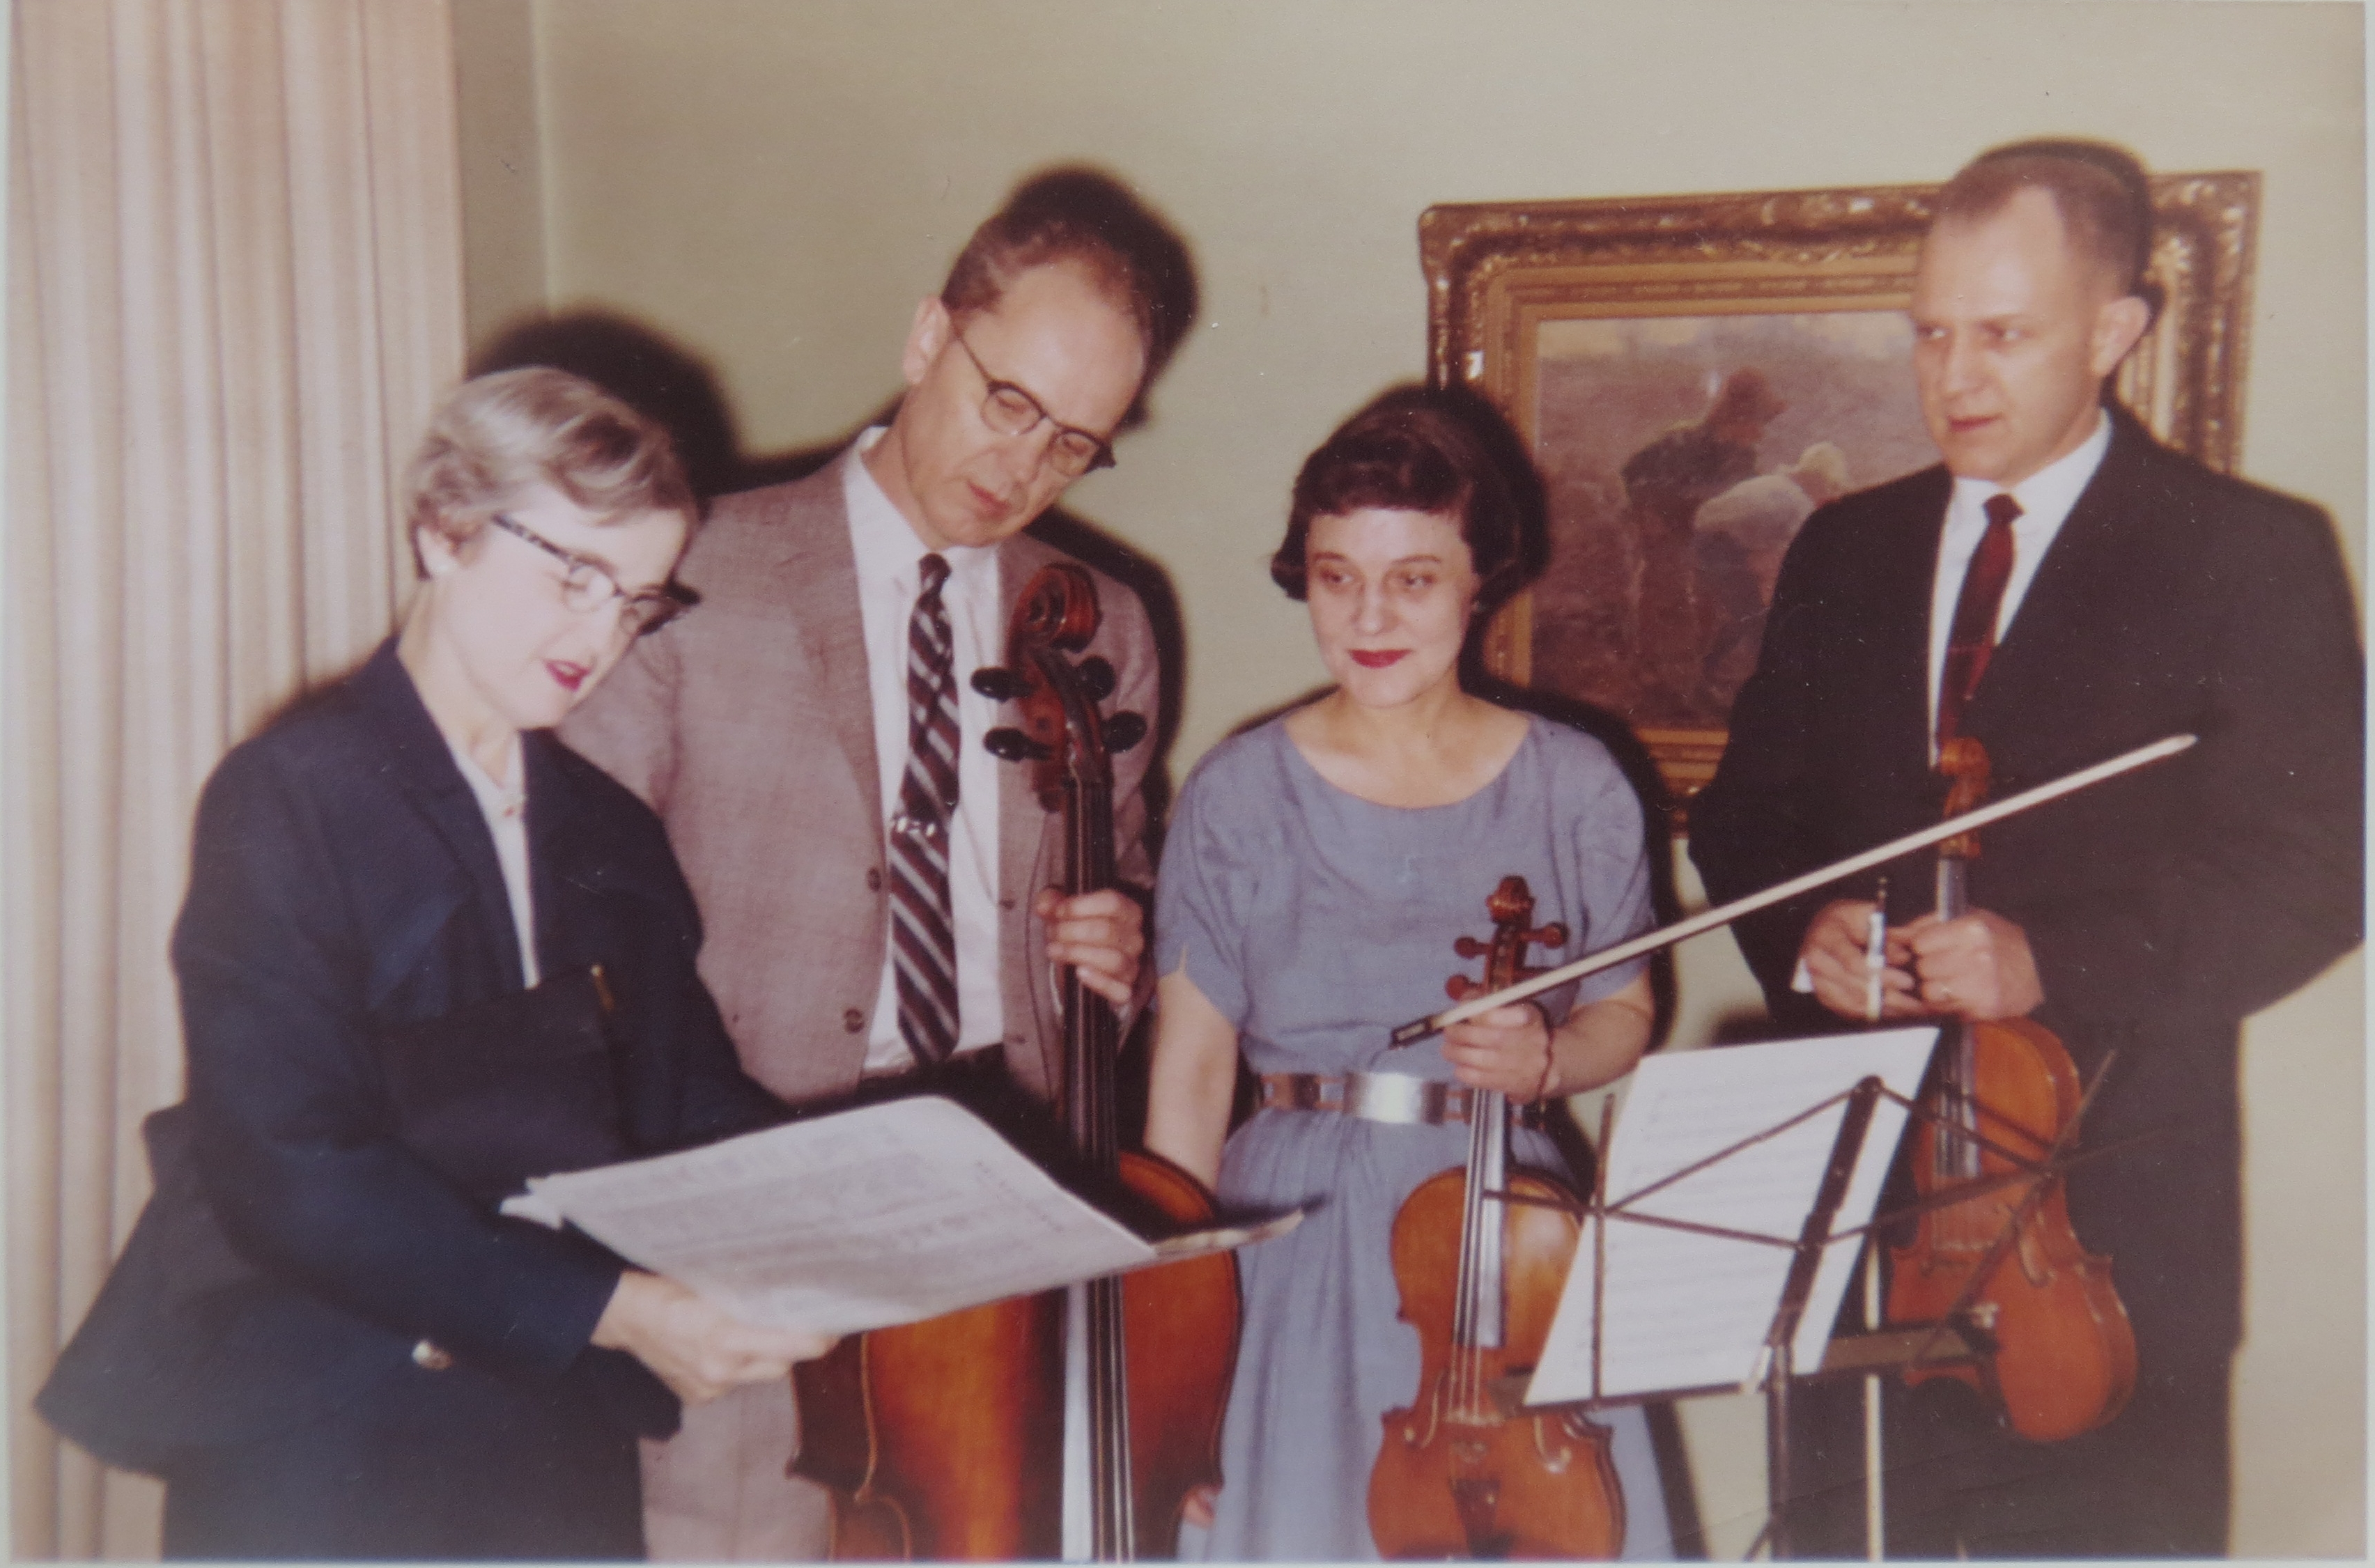 a 1959 string quartet